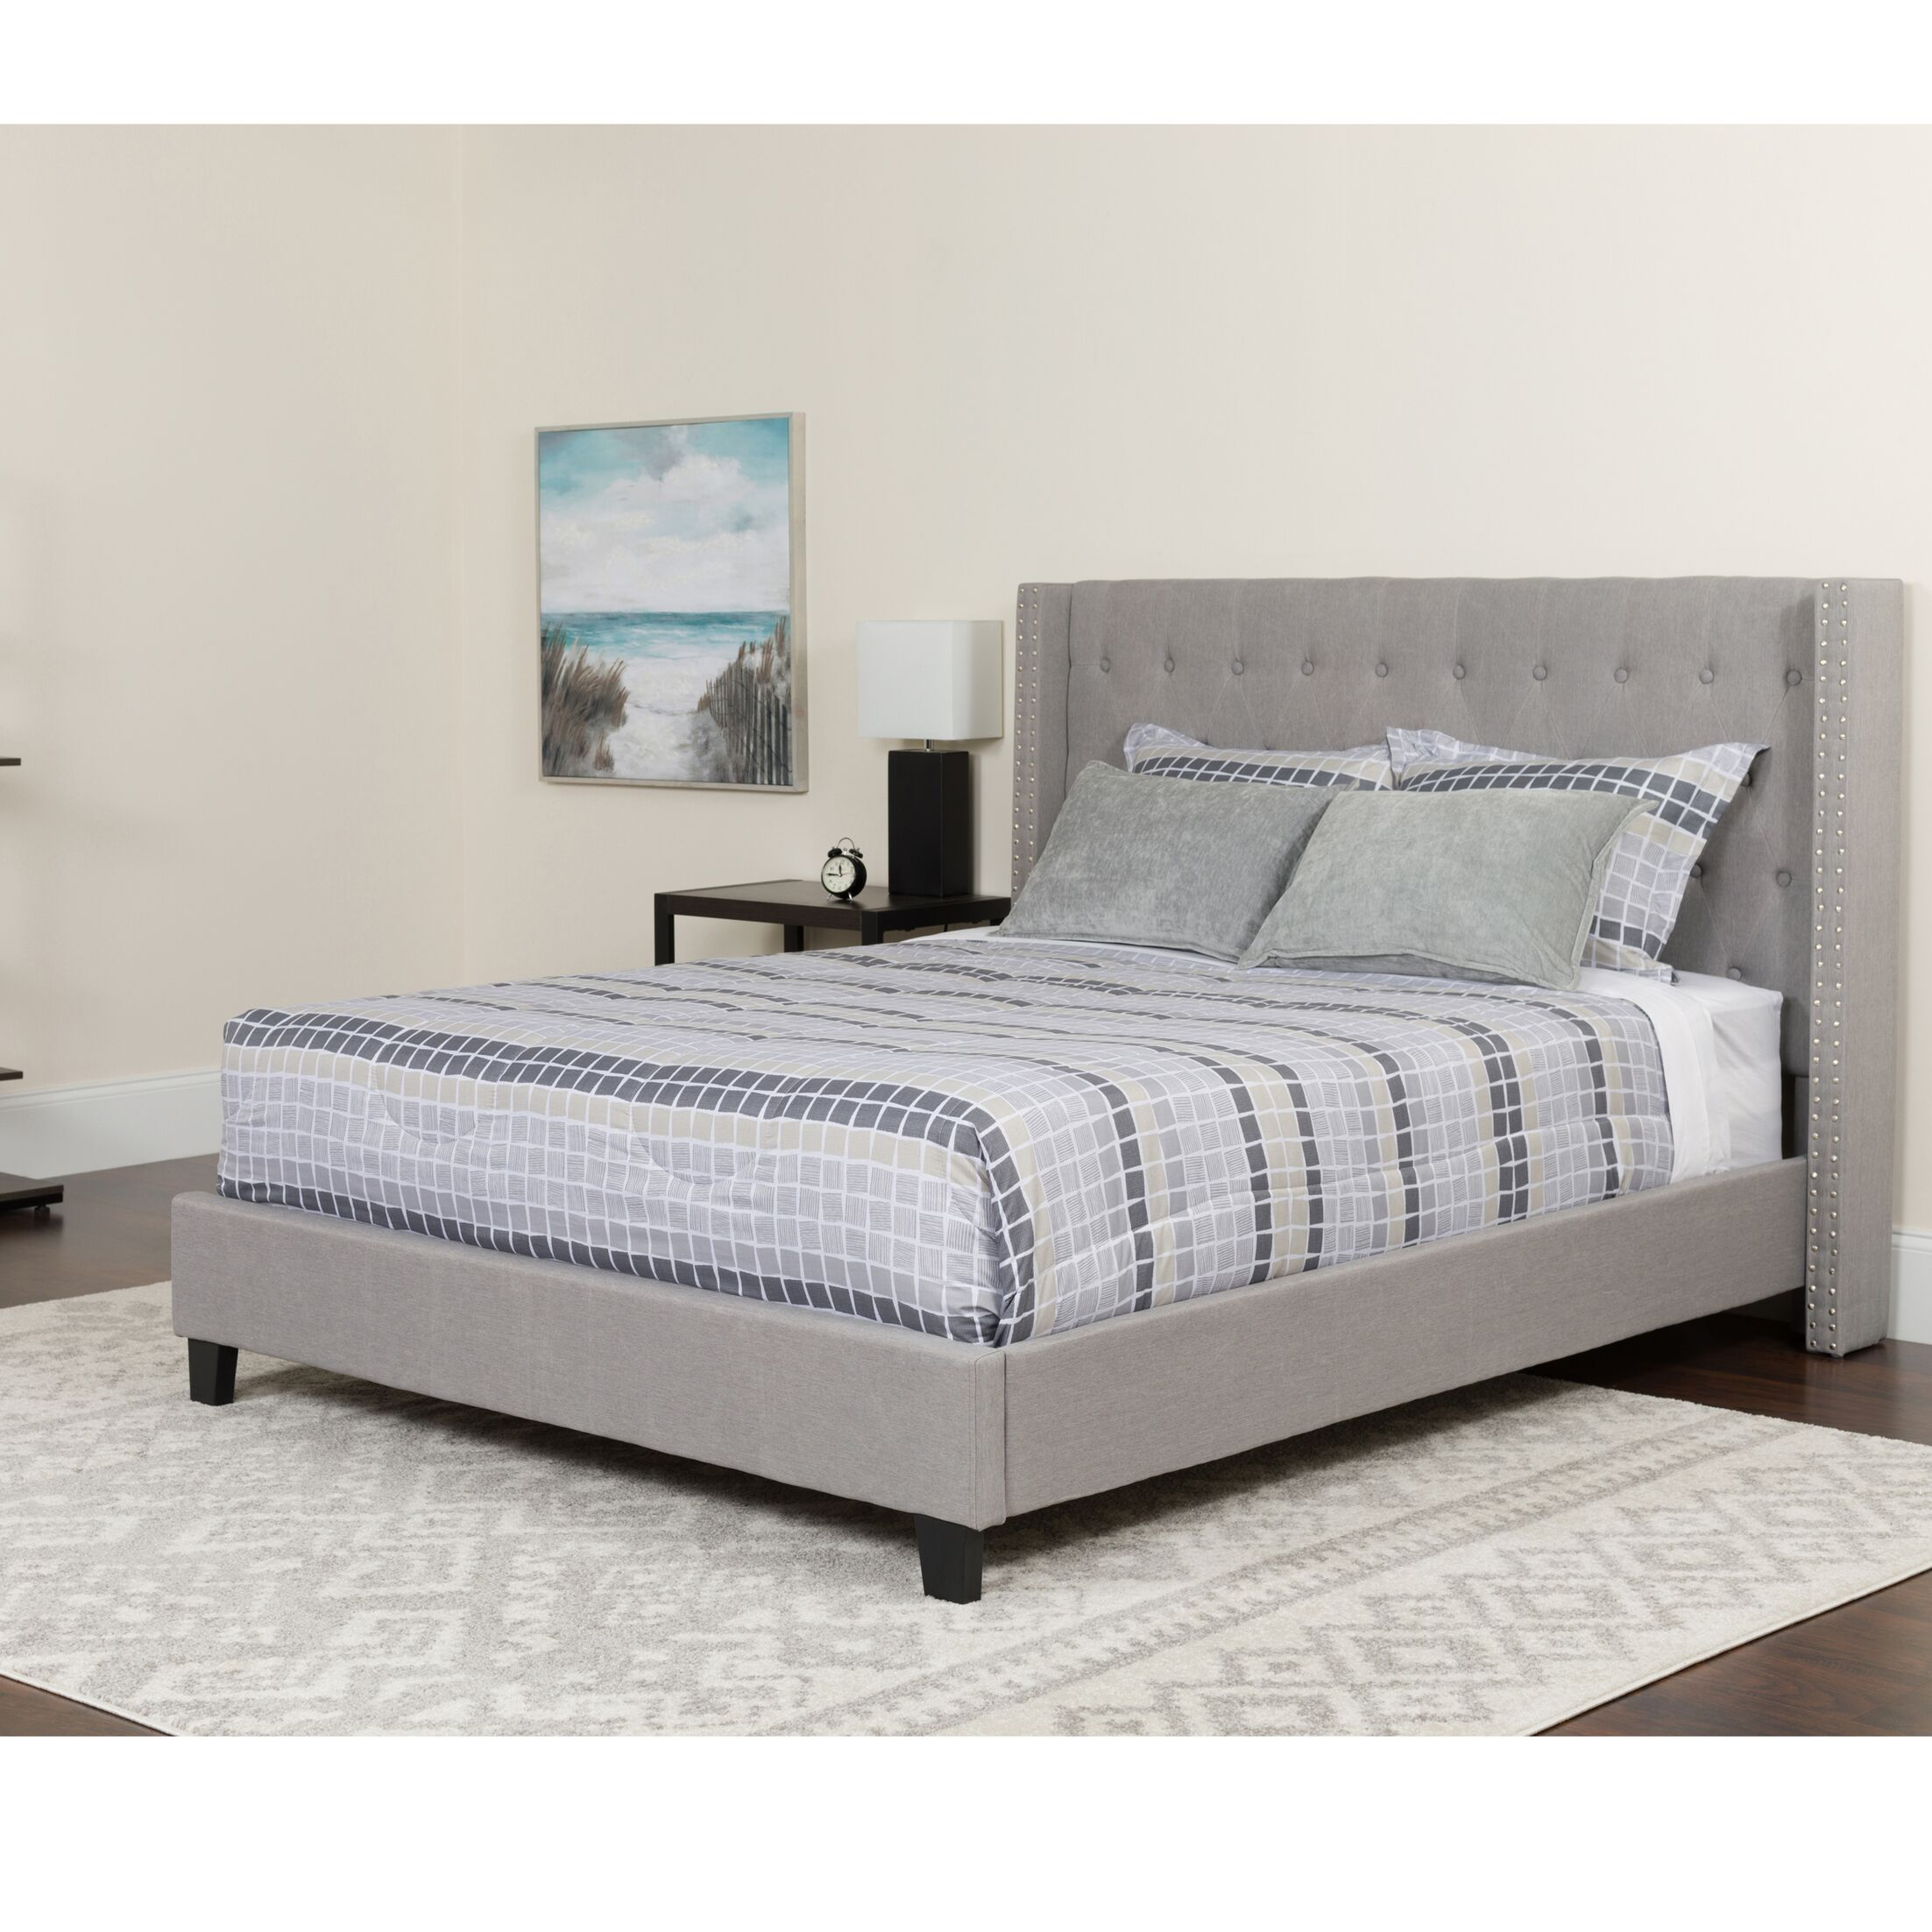 Konieczny Tufted Upholstered Platform Bed With Mattress Size: King, Color: Light Gray